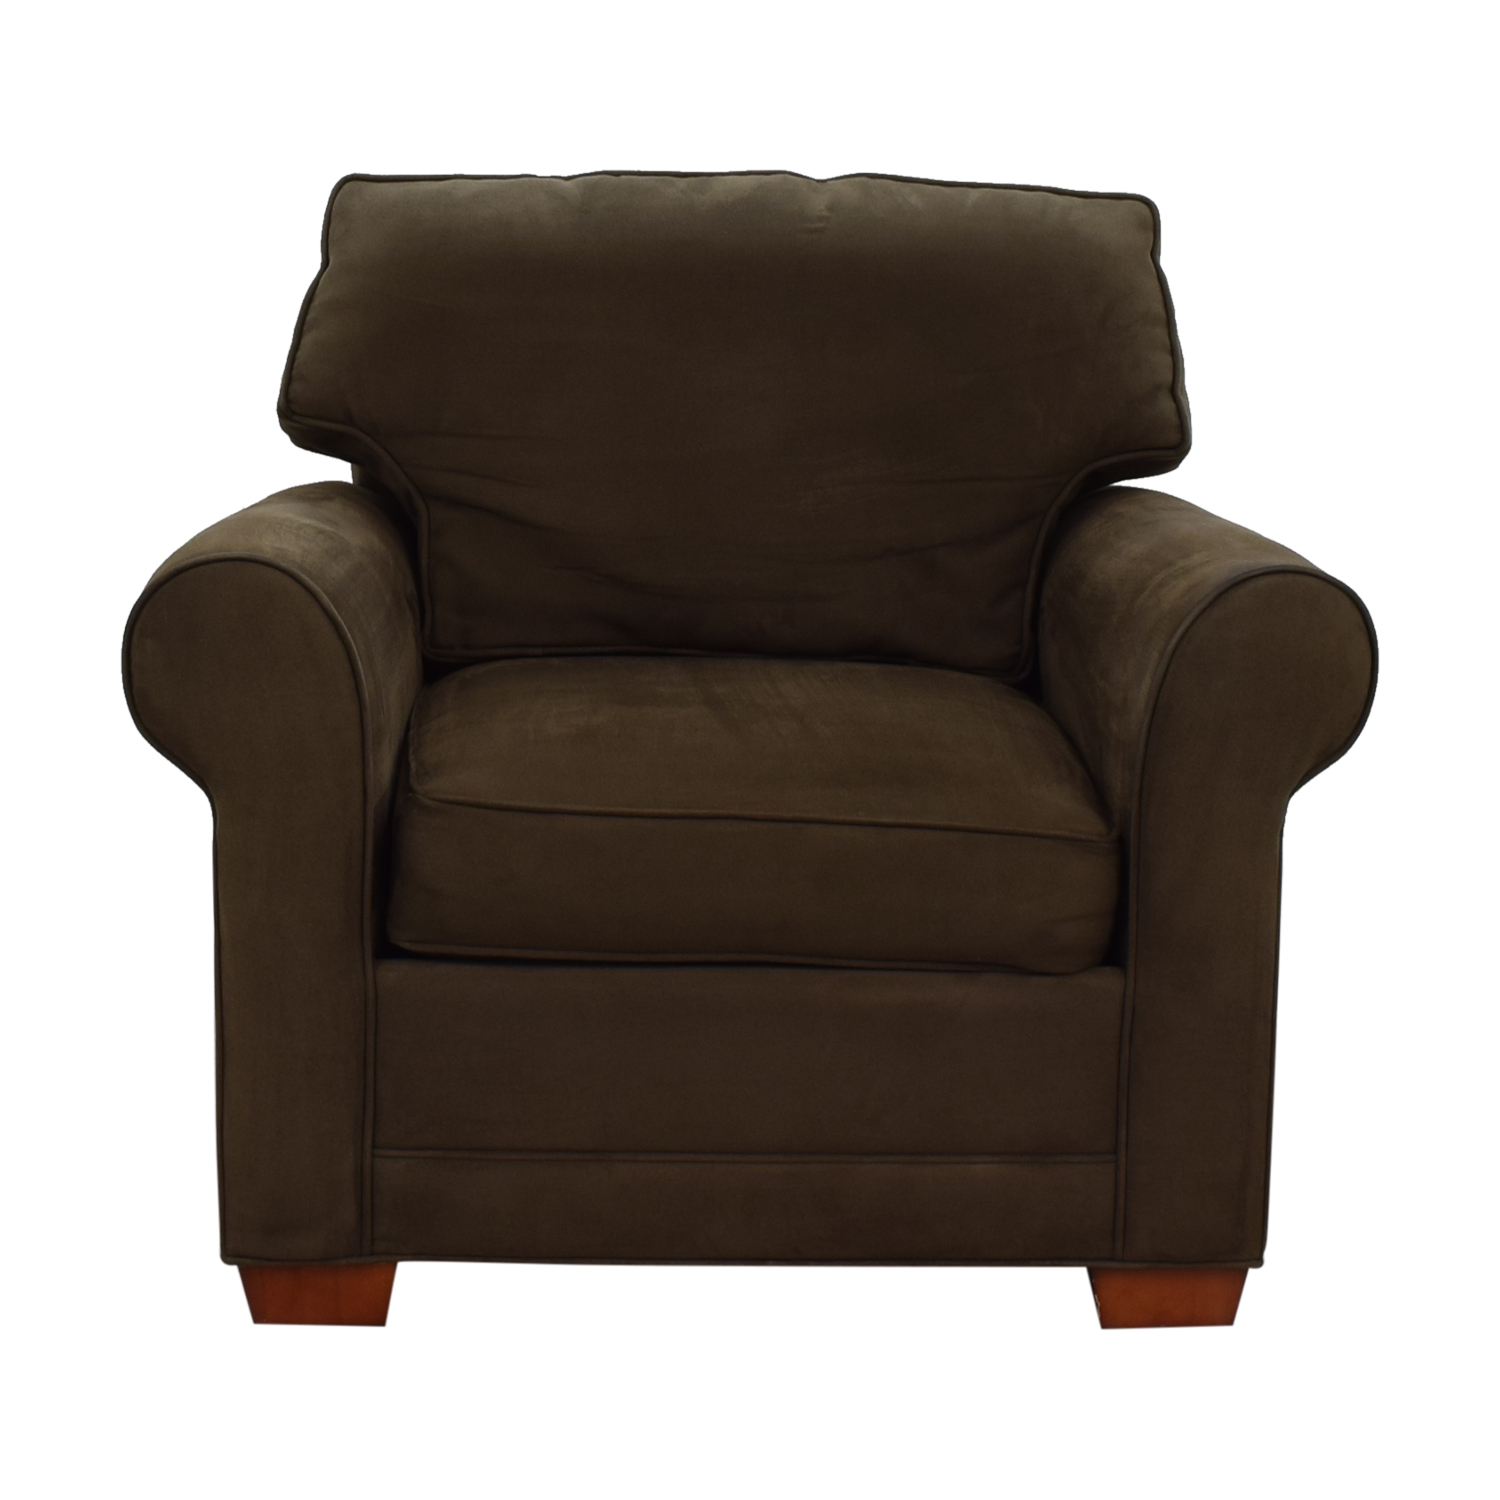 buy Raymour & Flanigan Raymour & Flanigan Brown Microfiber Accent Chair online